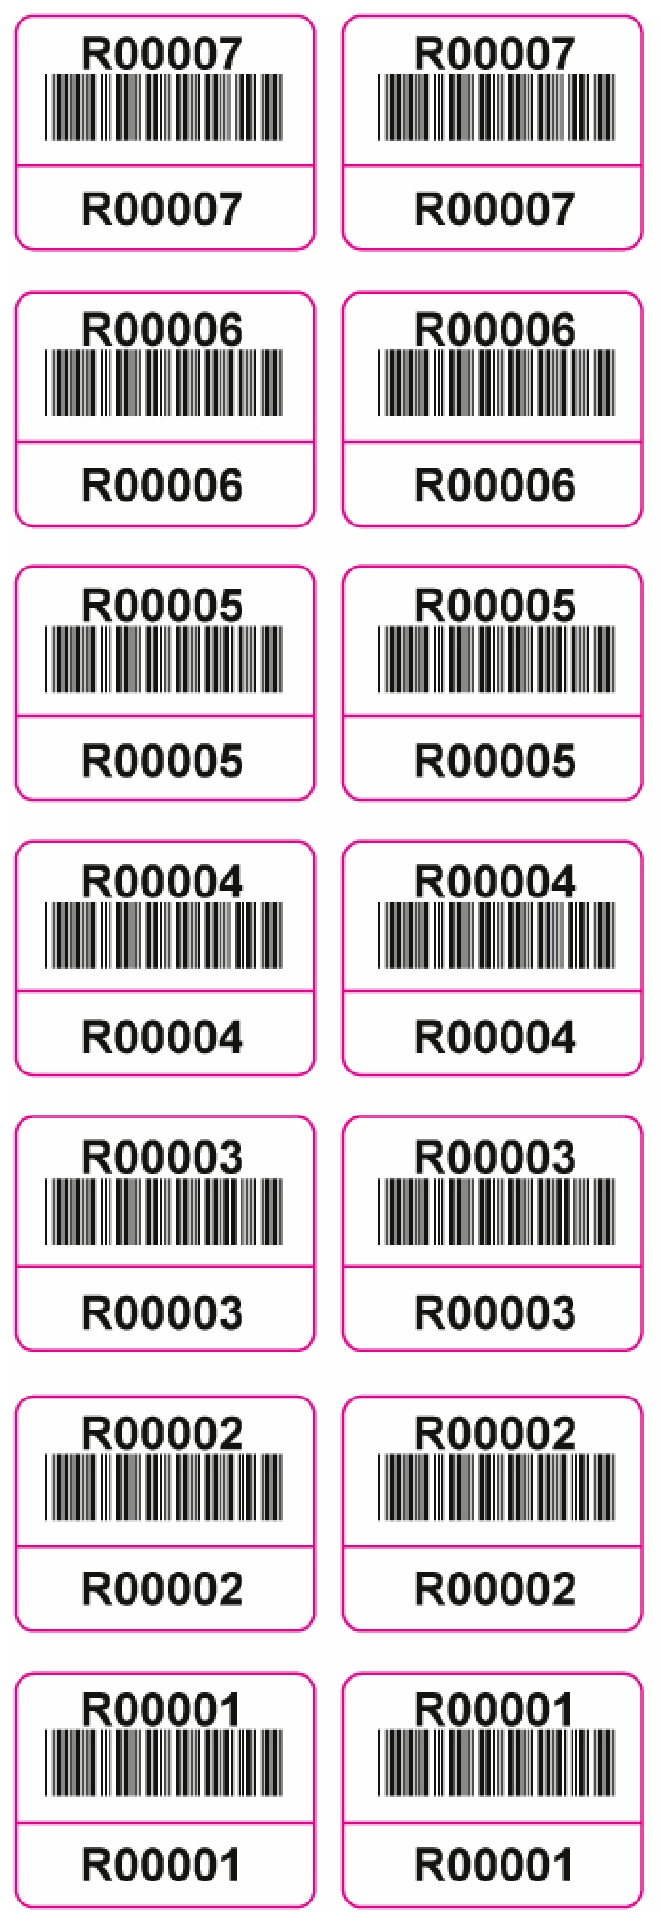 Media Library - Barcode Sample 2